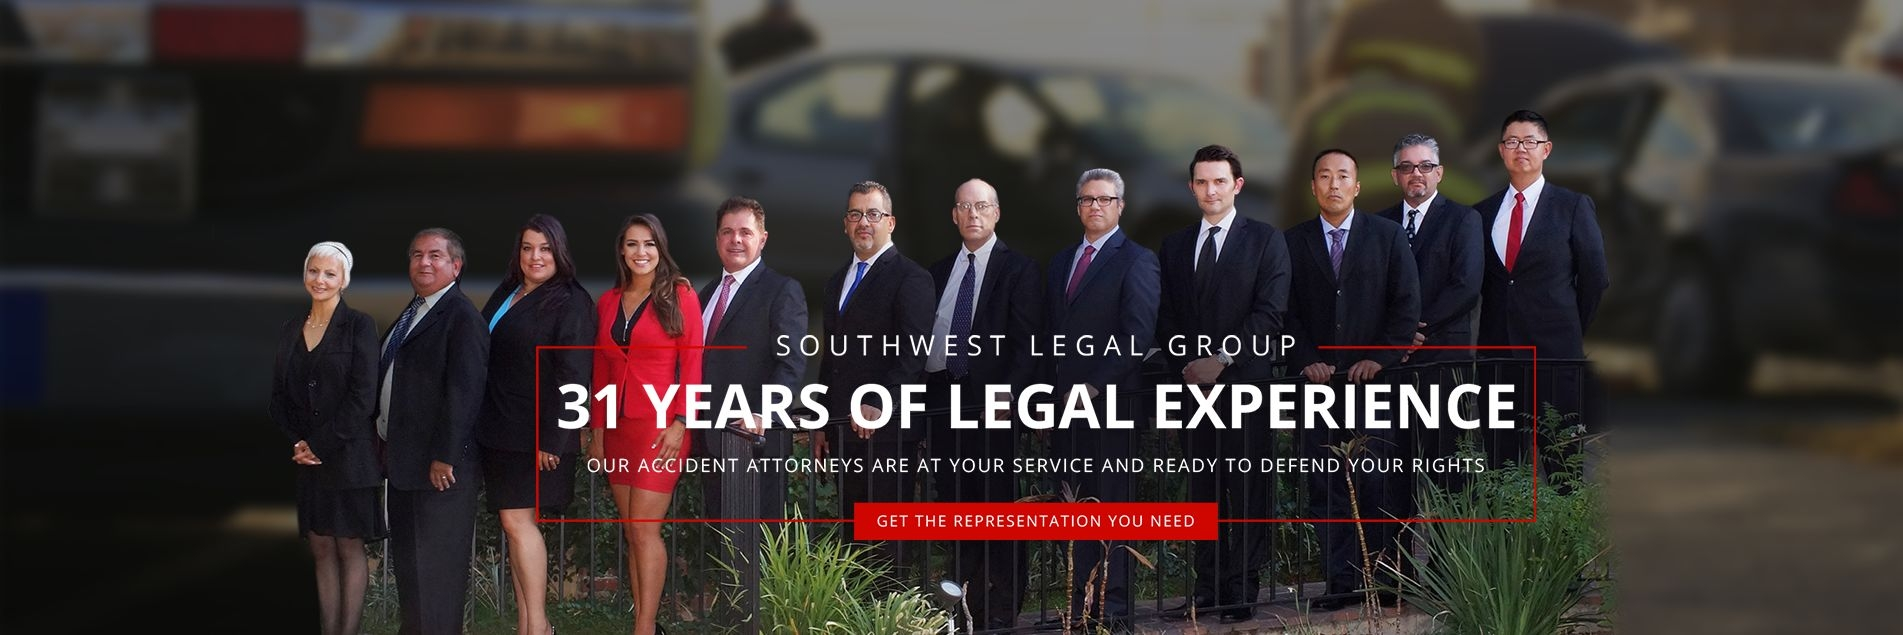 Solucion Legal (@southwestlegal) Cover Image